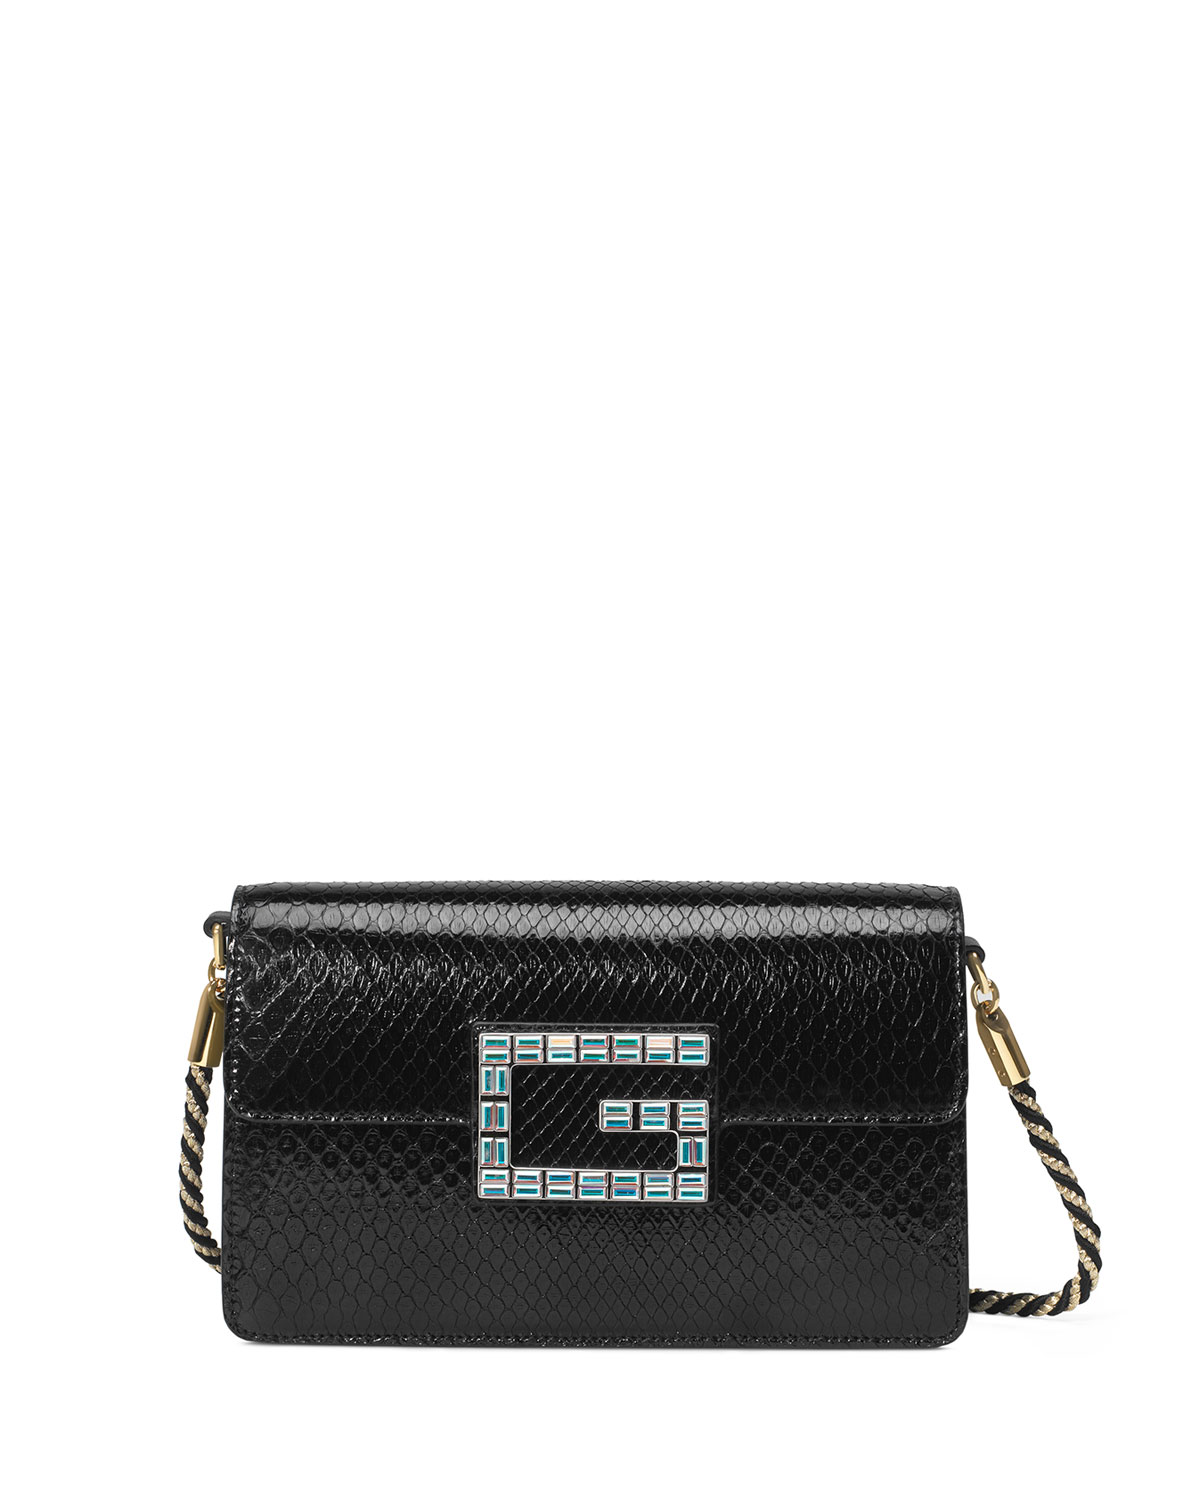 Gucci Broadway Small Python Snake Shoulder Bag with Square G ... 4bbd3d09b9668